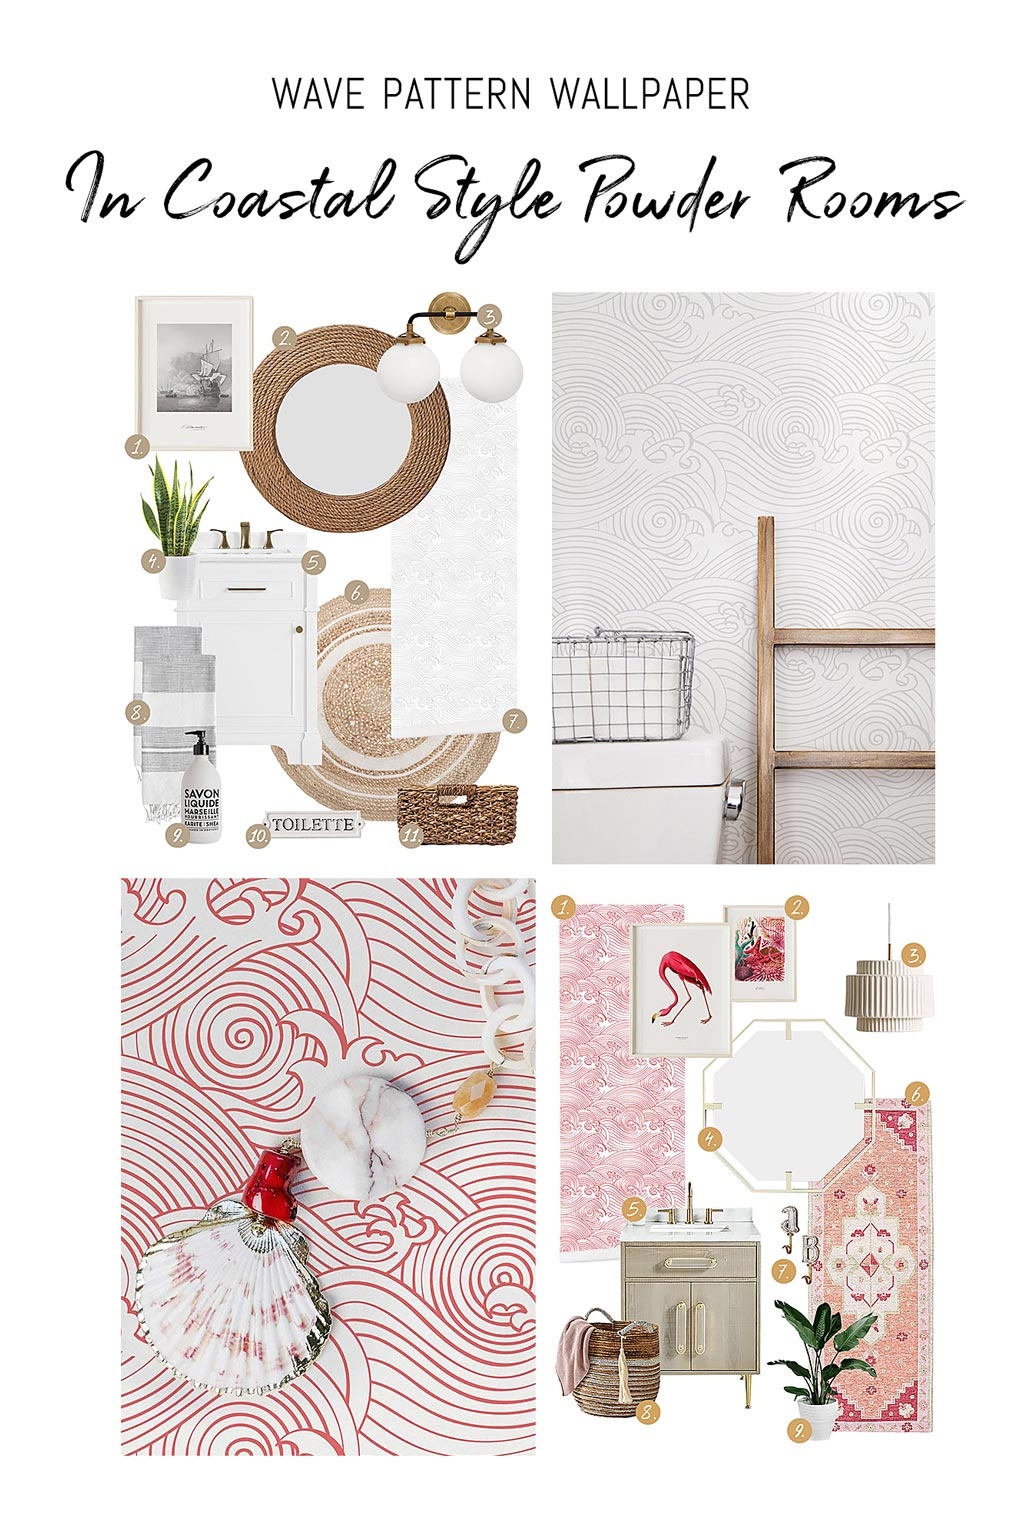 Wave pattern removable wallpaper styled two ways in coastal farmhouse and coastal eclectic style powder room interiors mood boards